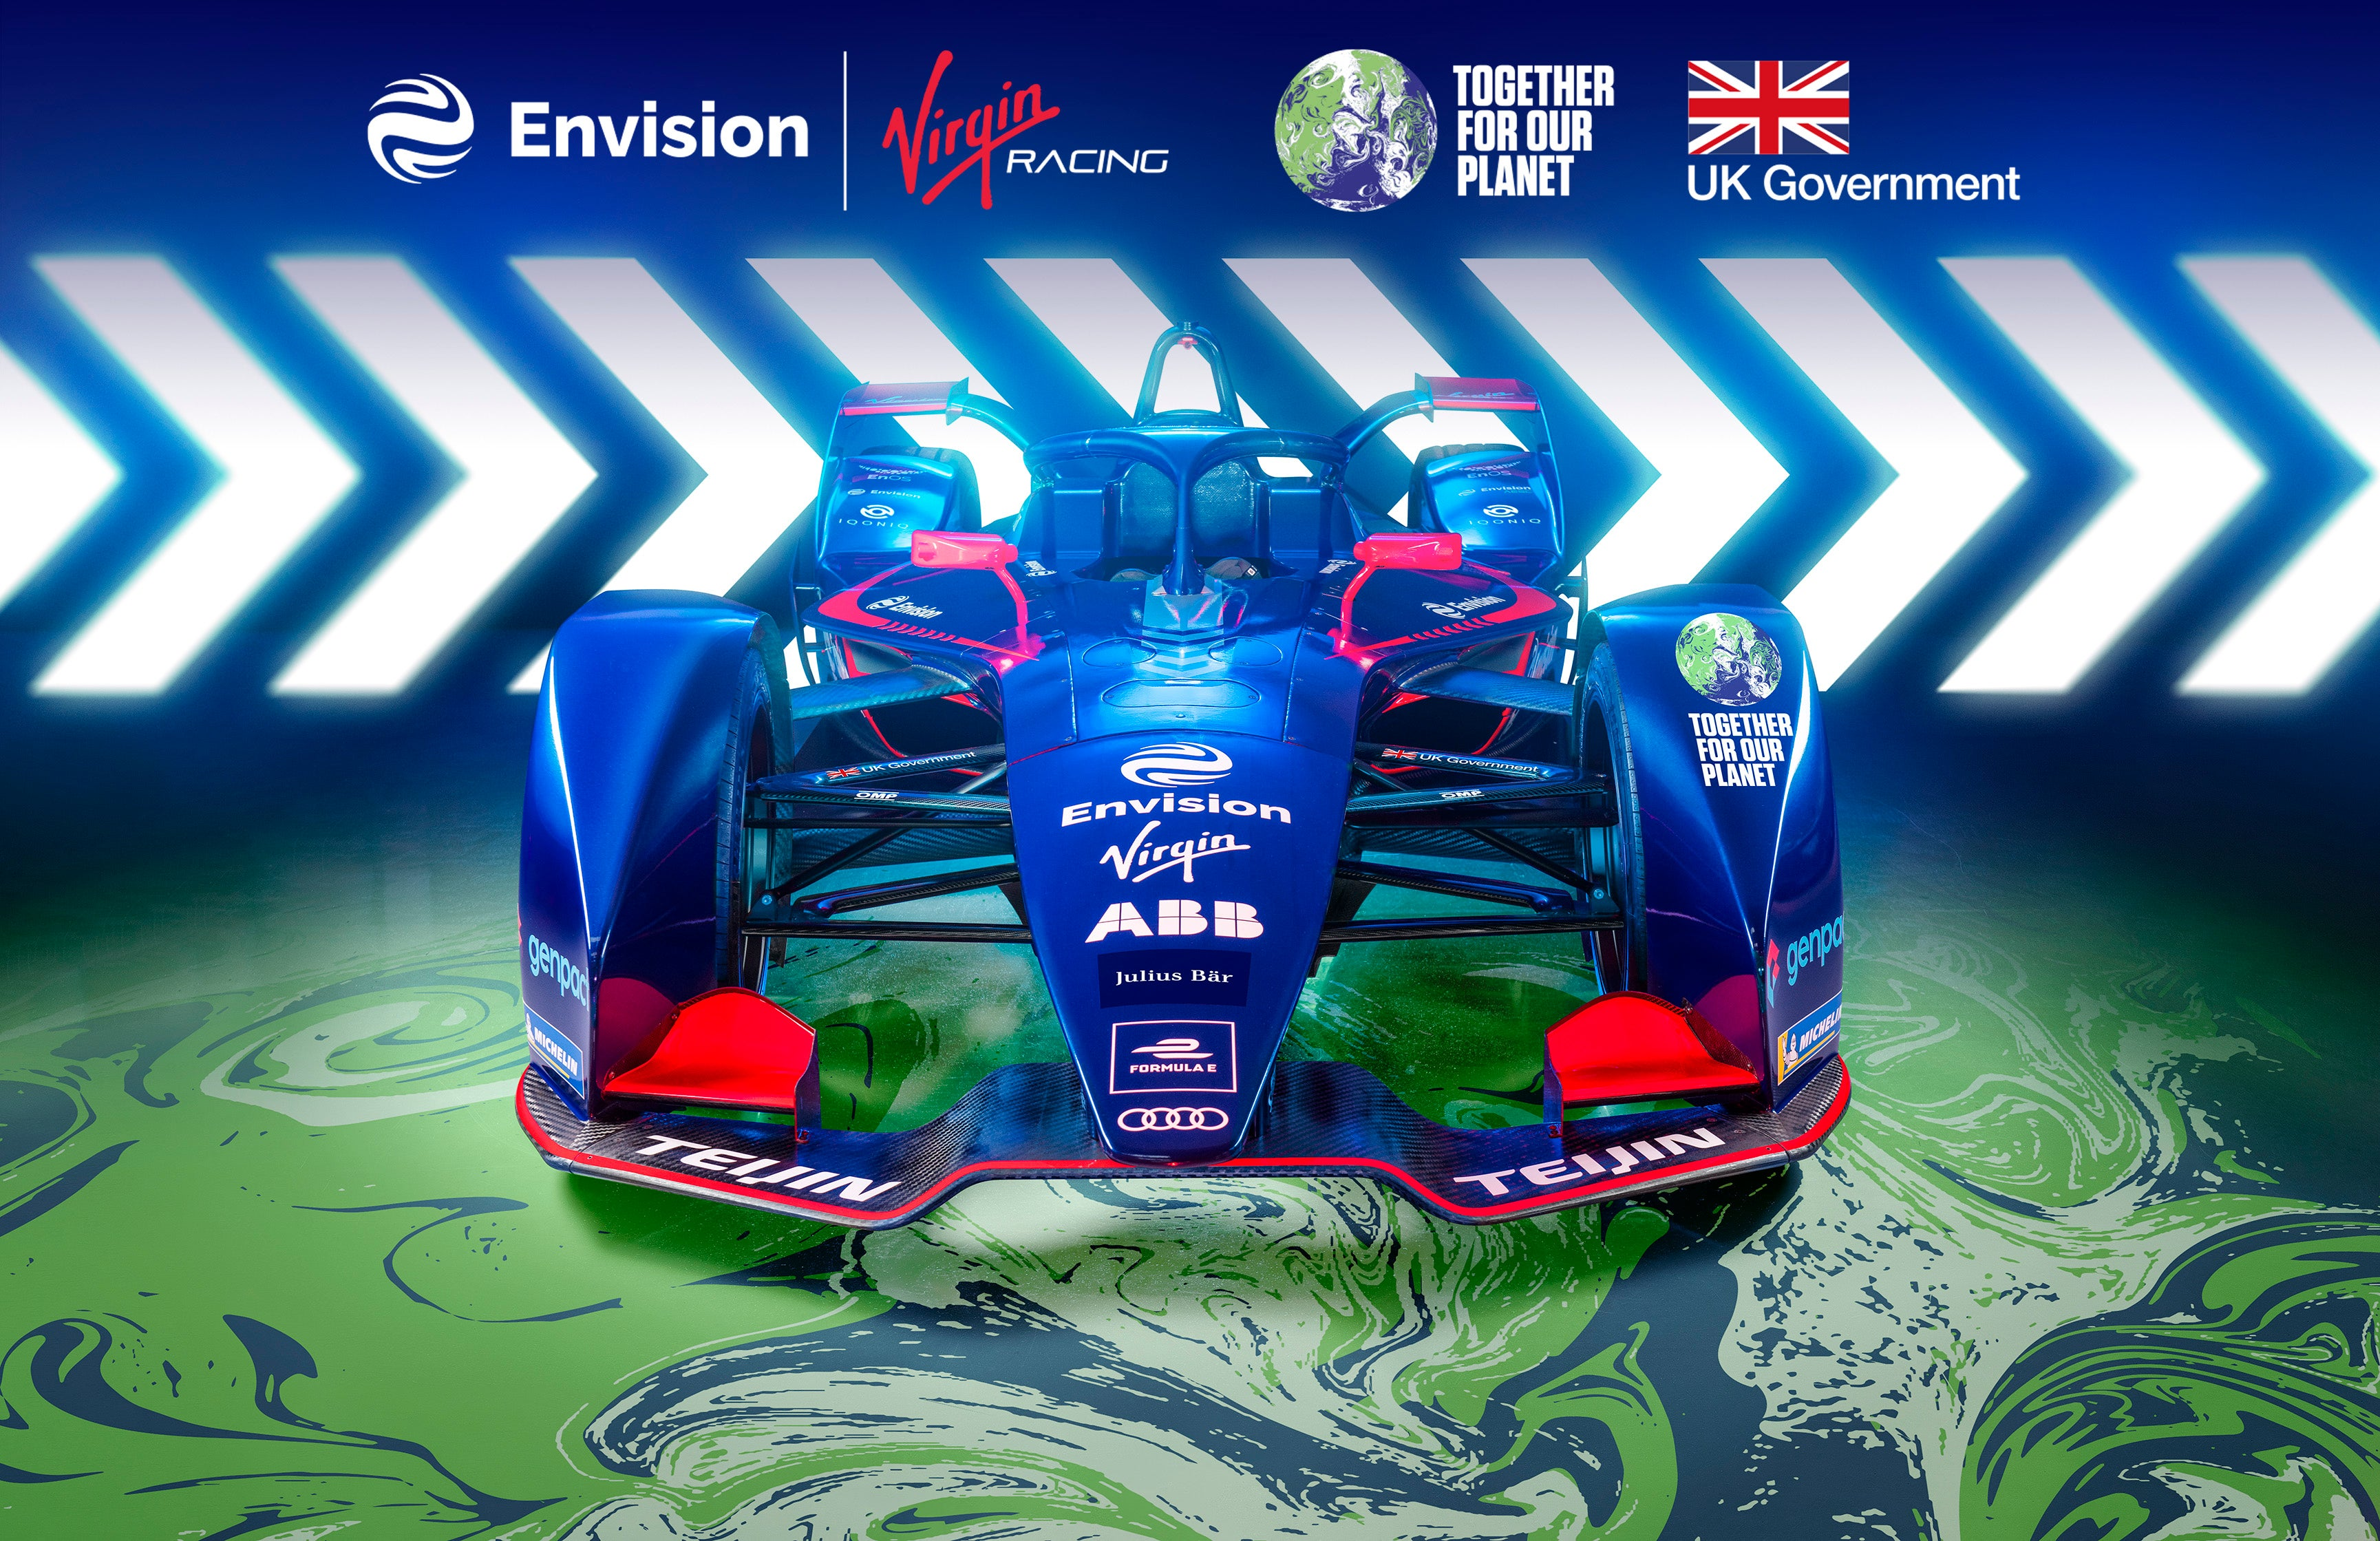 Formula E motor-racing team to promote electric vehicles ahead of UN climate talks